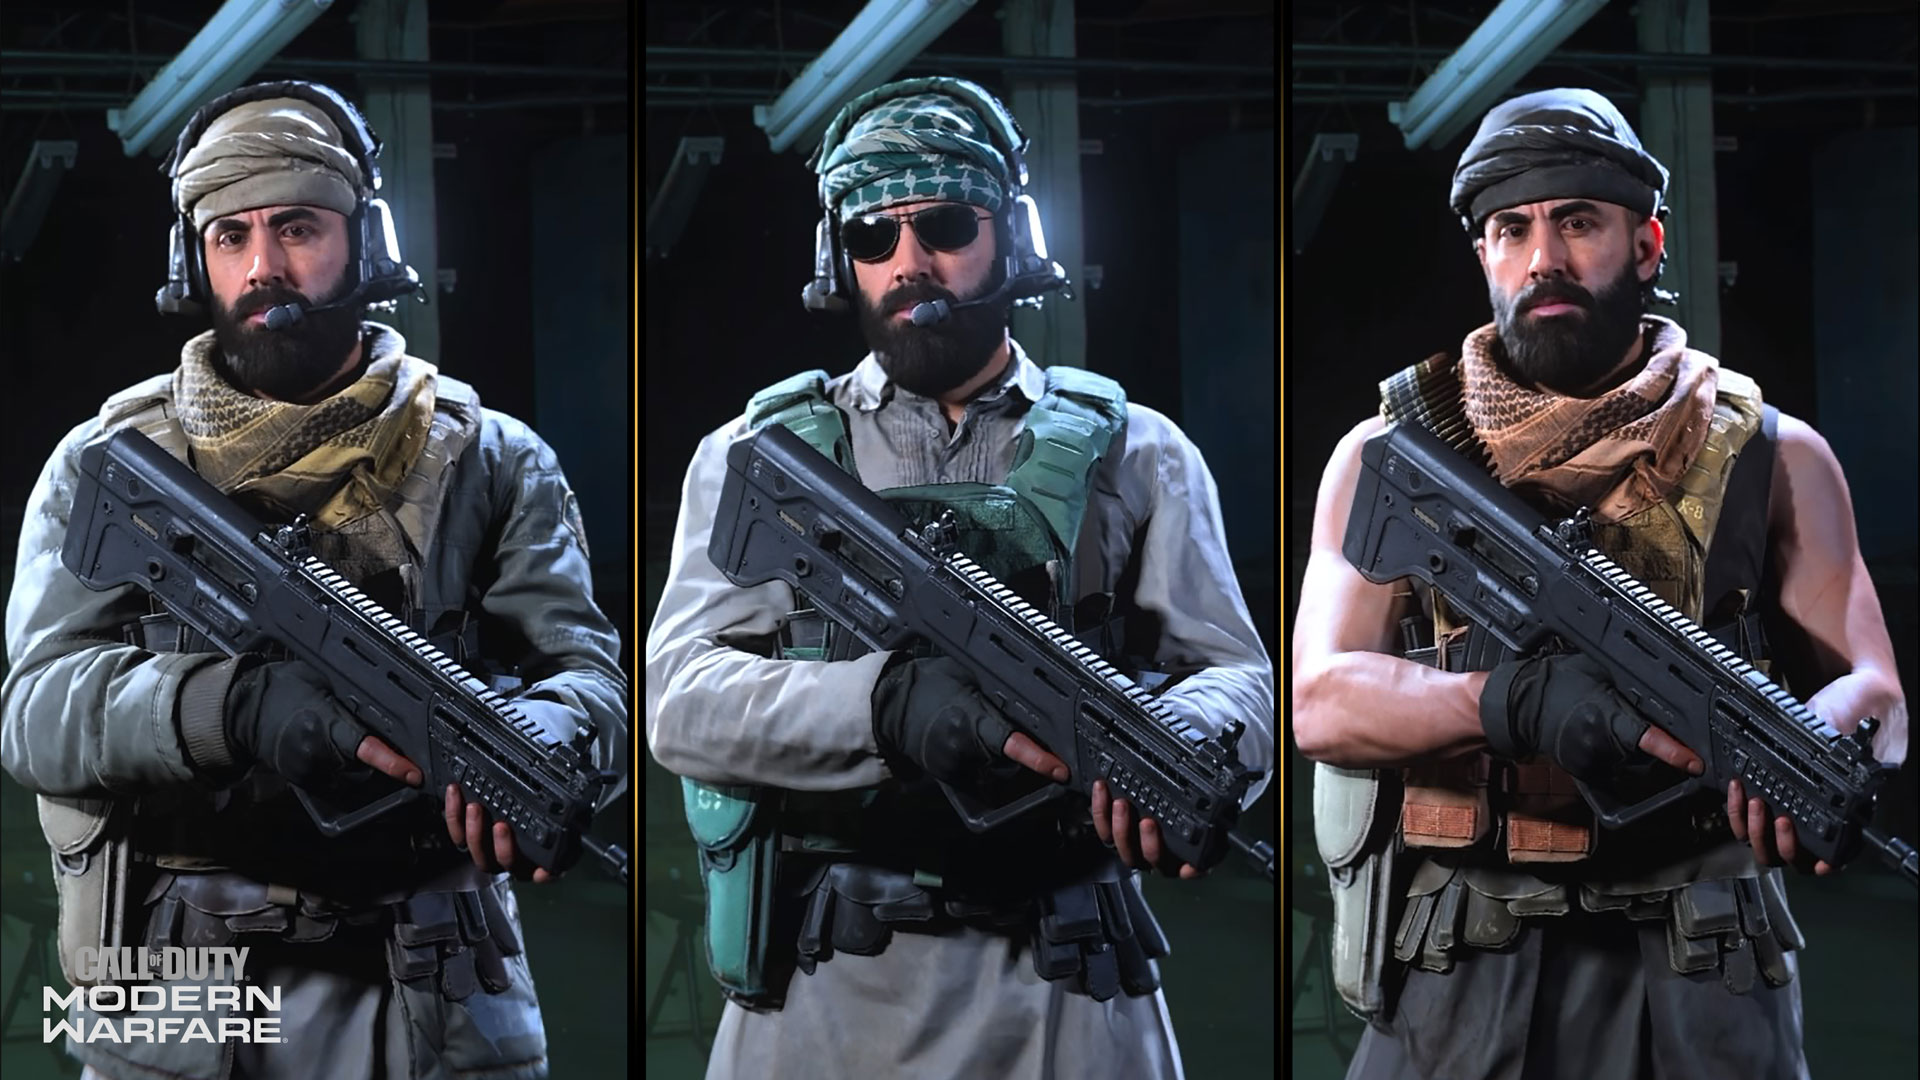 The Allegiance Operators of Call of Duty®: Modern Warfare® bring Mace to Battle - Image 8